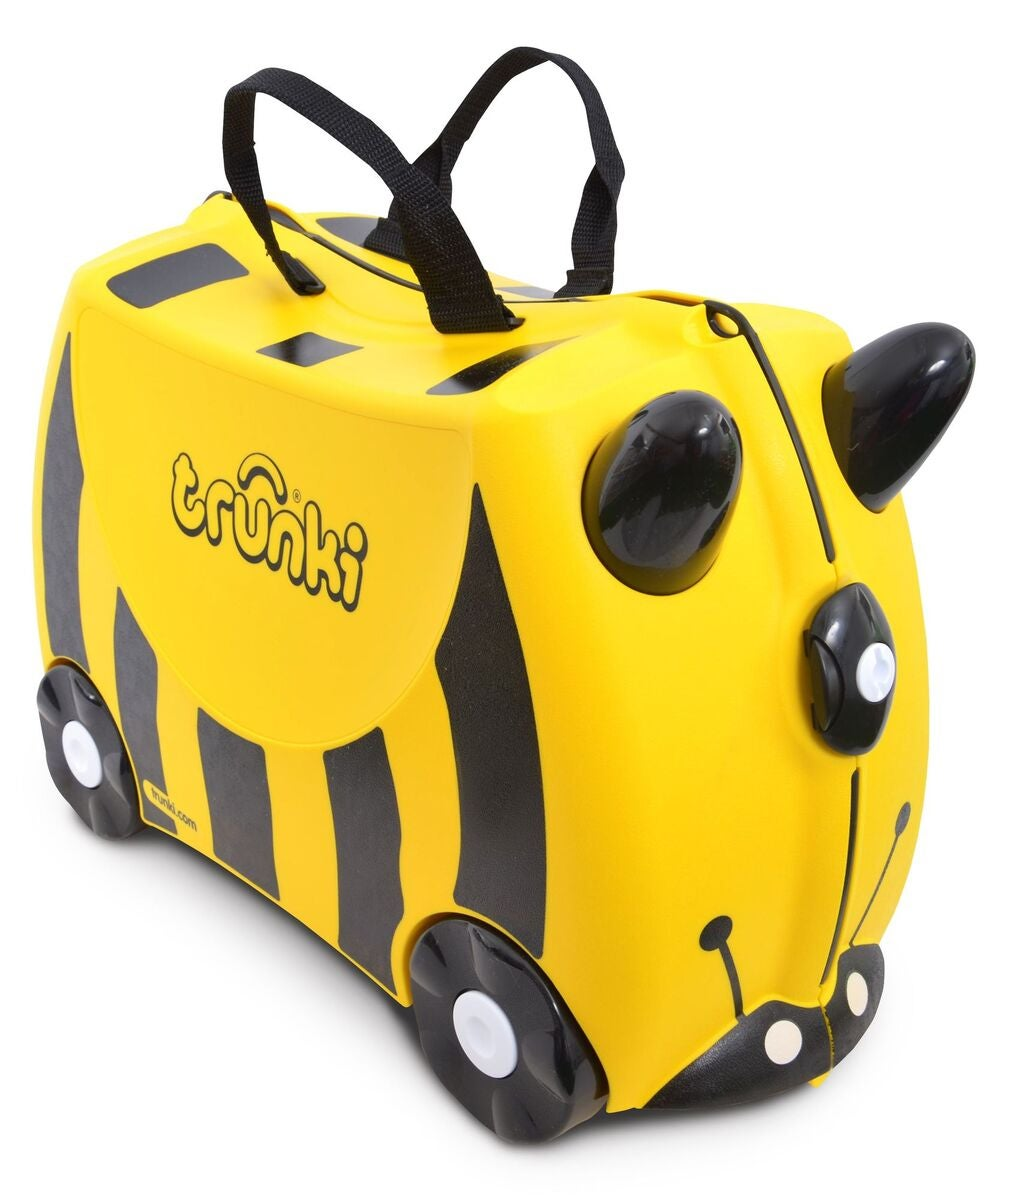 Trunki Koffert Bie Gul